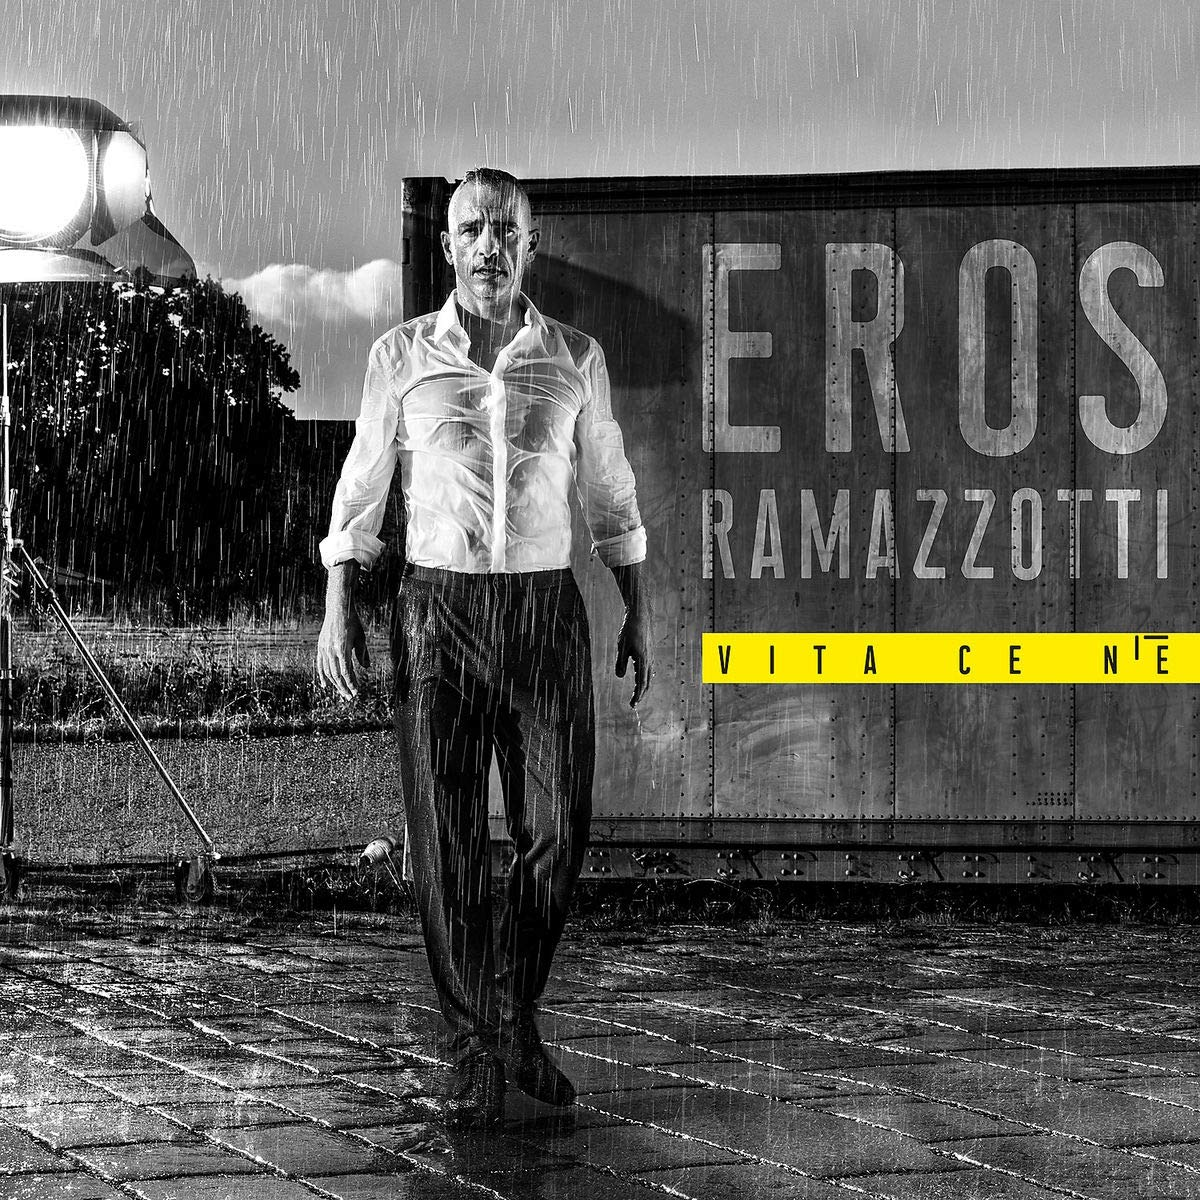 Eros Ramazzotti - Vita Ce N'e [import] (Deluxe Edition, Germany - Import)